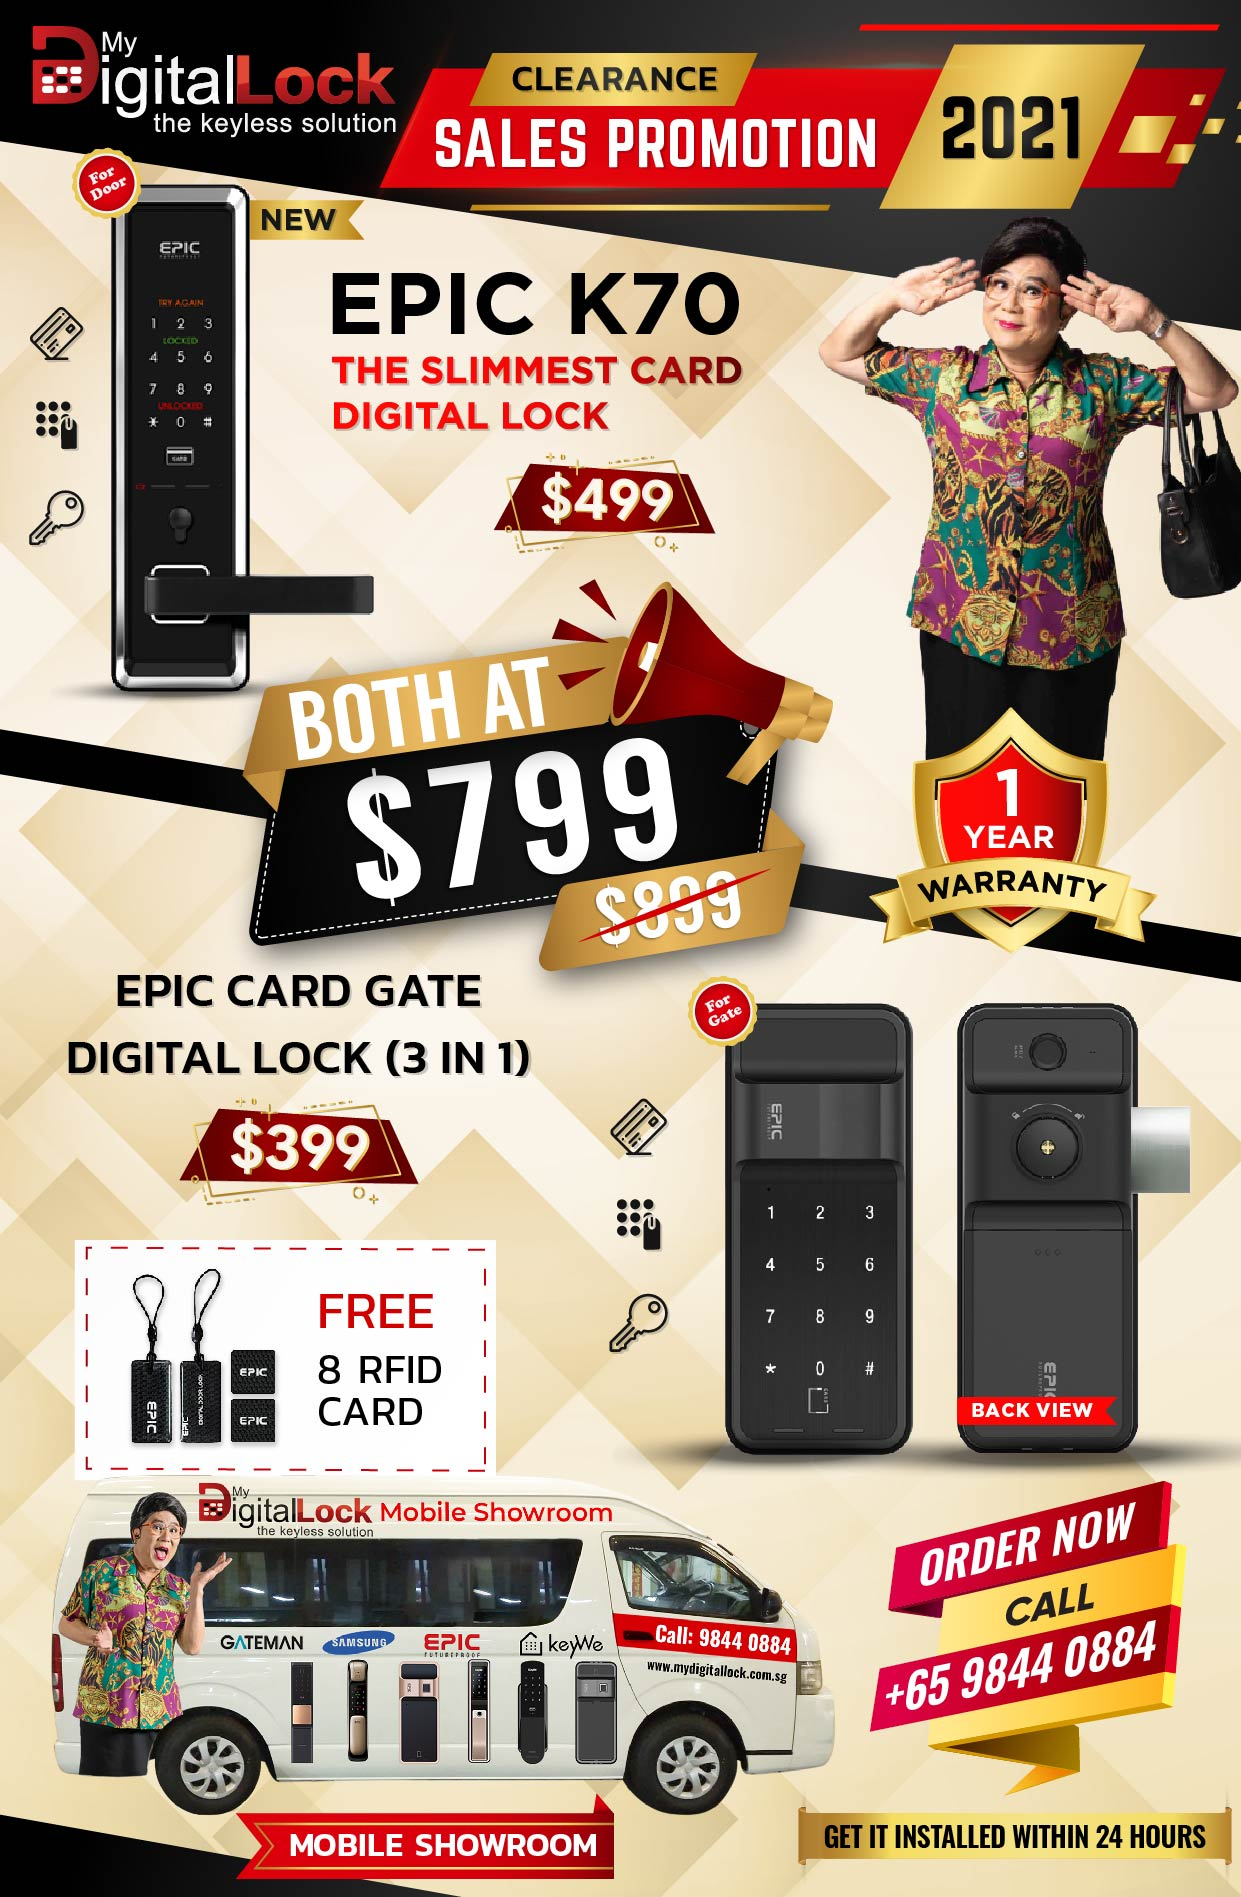 Epic K70 Slimmest Card Digital Lock